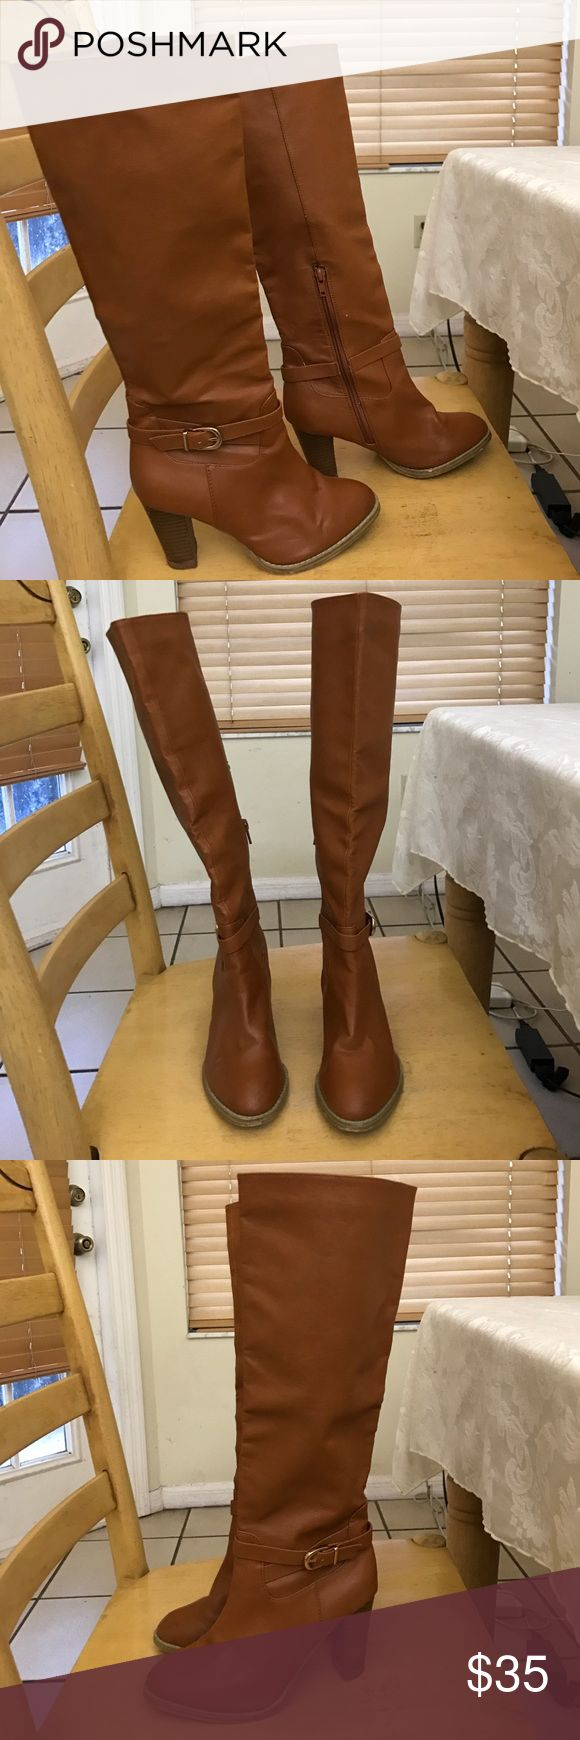 Used Tan Knee High Boots Gently Used H&M Tan Knee High Boots. Great condition. Women's size 5 H&M Shoes Heeled Boots